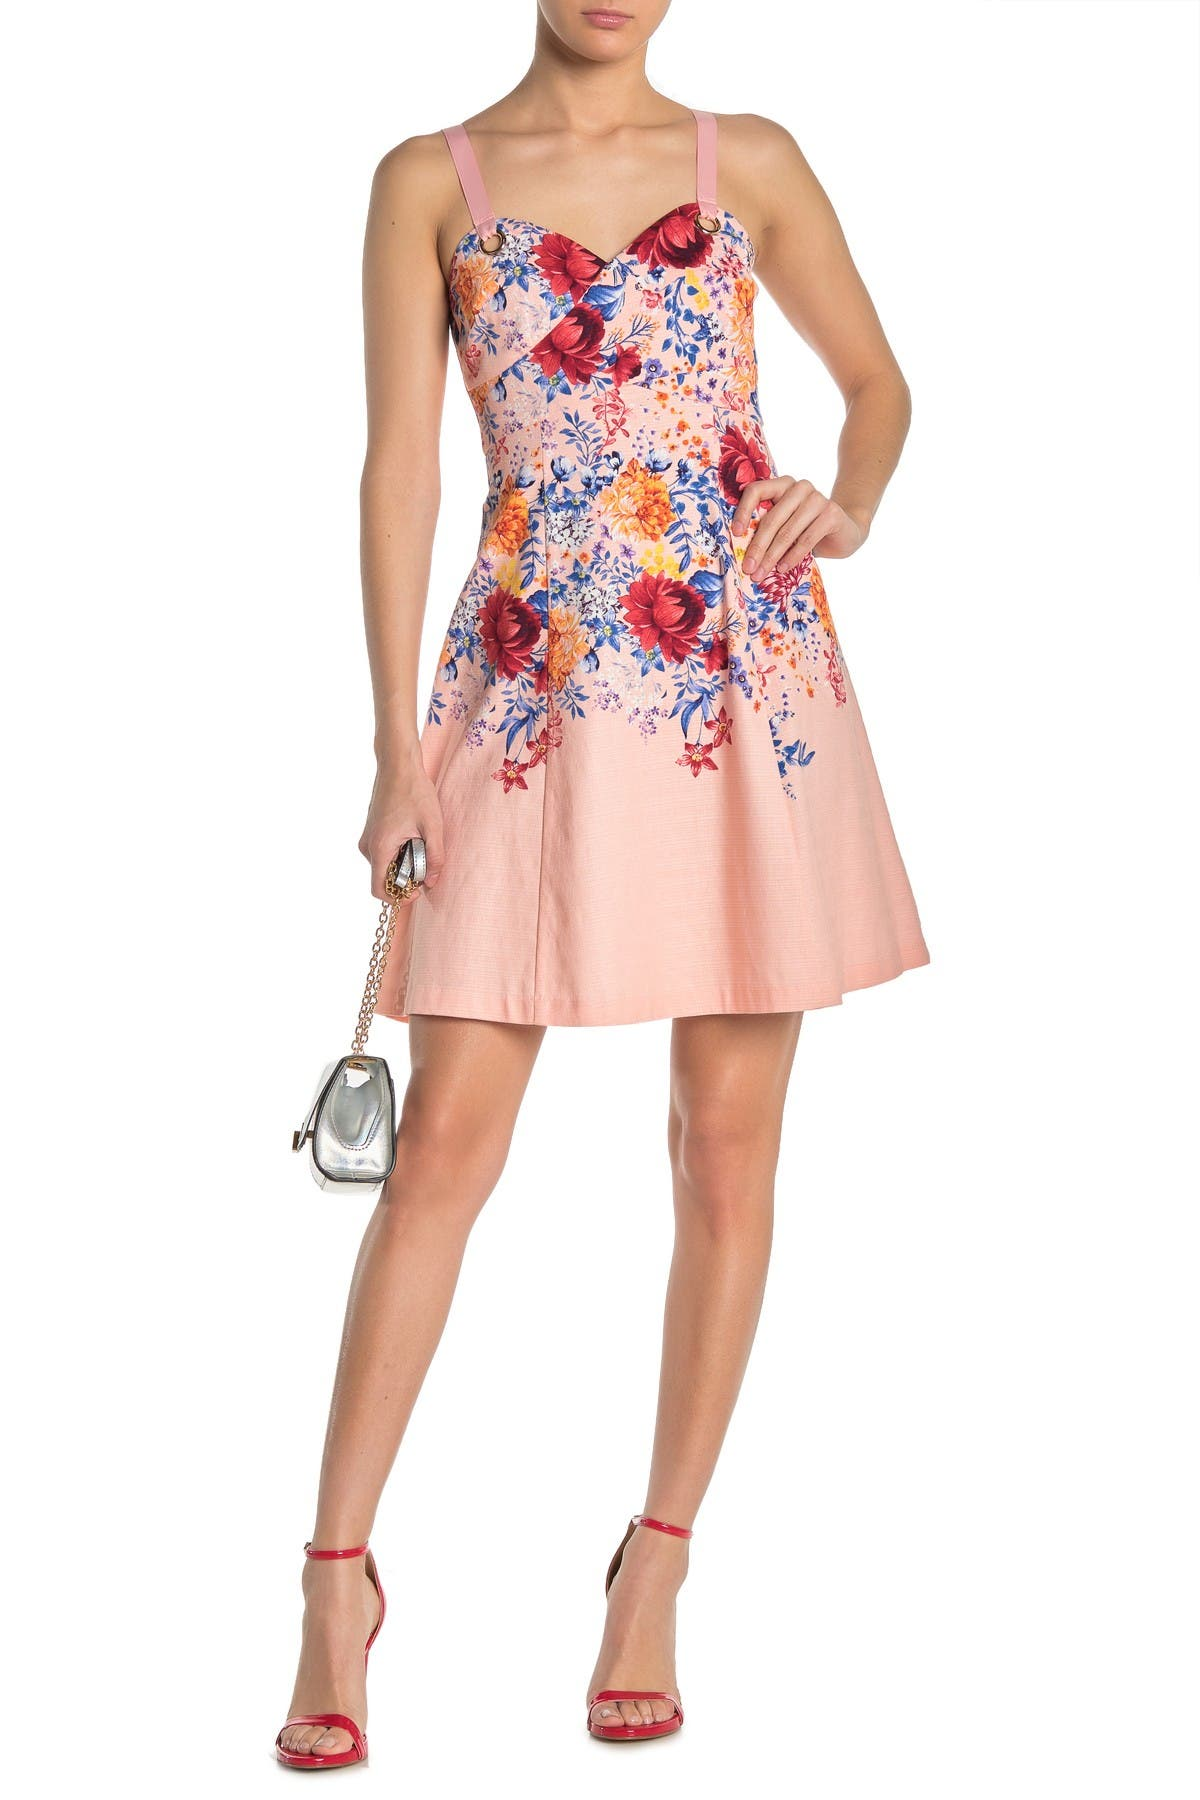 Image of GUESS Floral Sweetheart Sleeveless Fit & Flare Dress